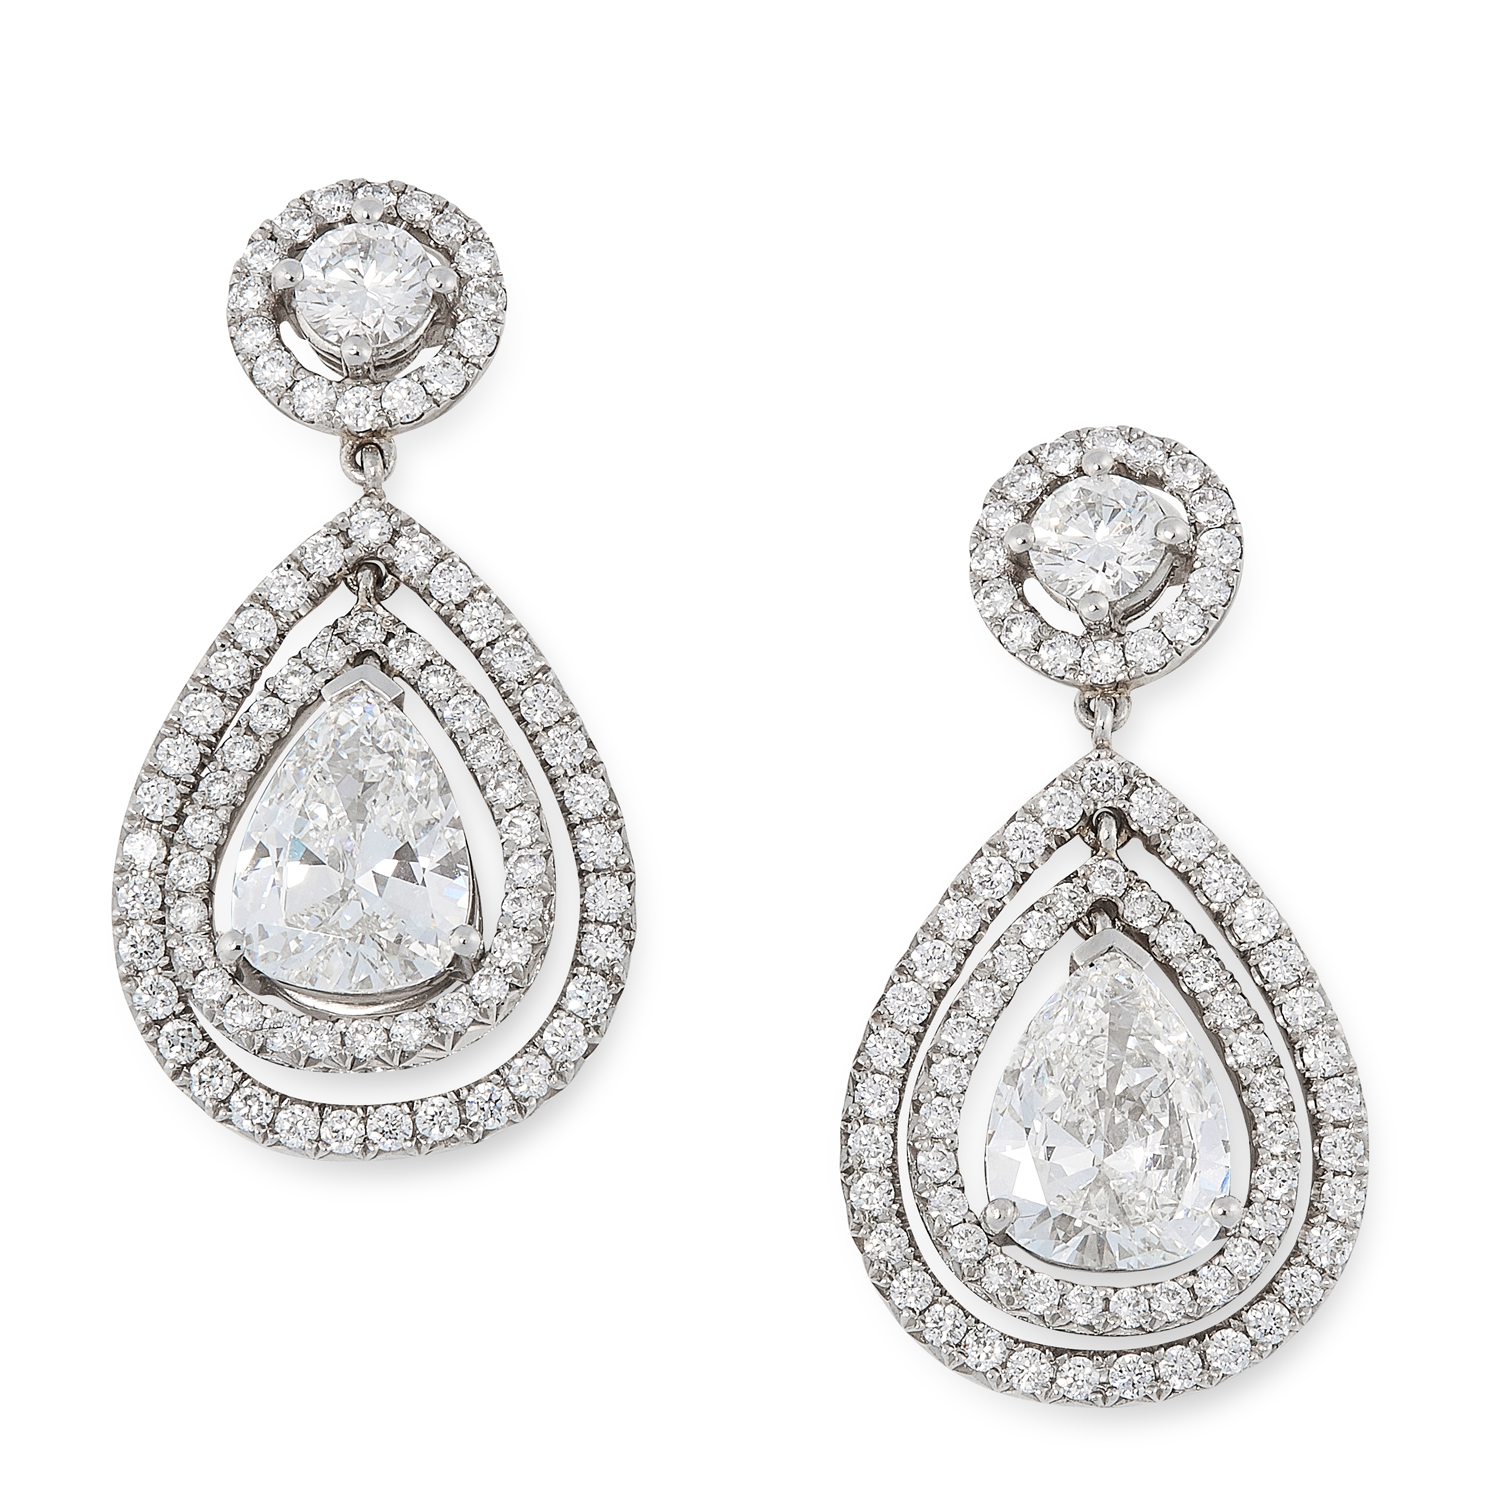 A PAIR OF DIAMOND DROP EARRINGS in white gold, each set with a pear cut diamond of 1.01 carats,